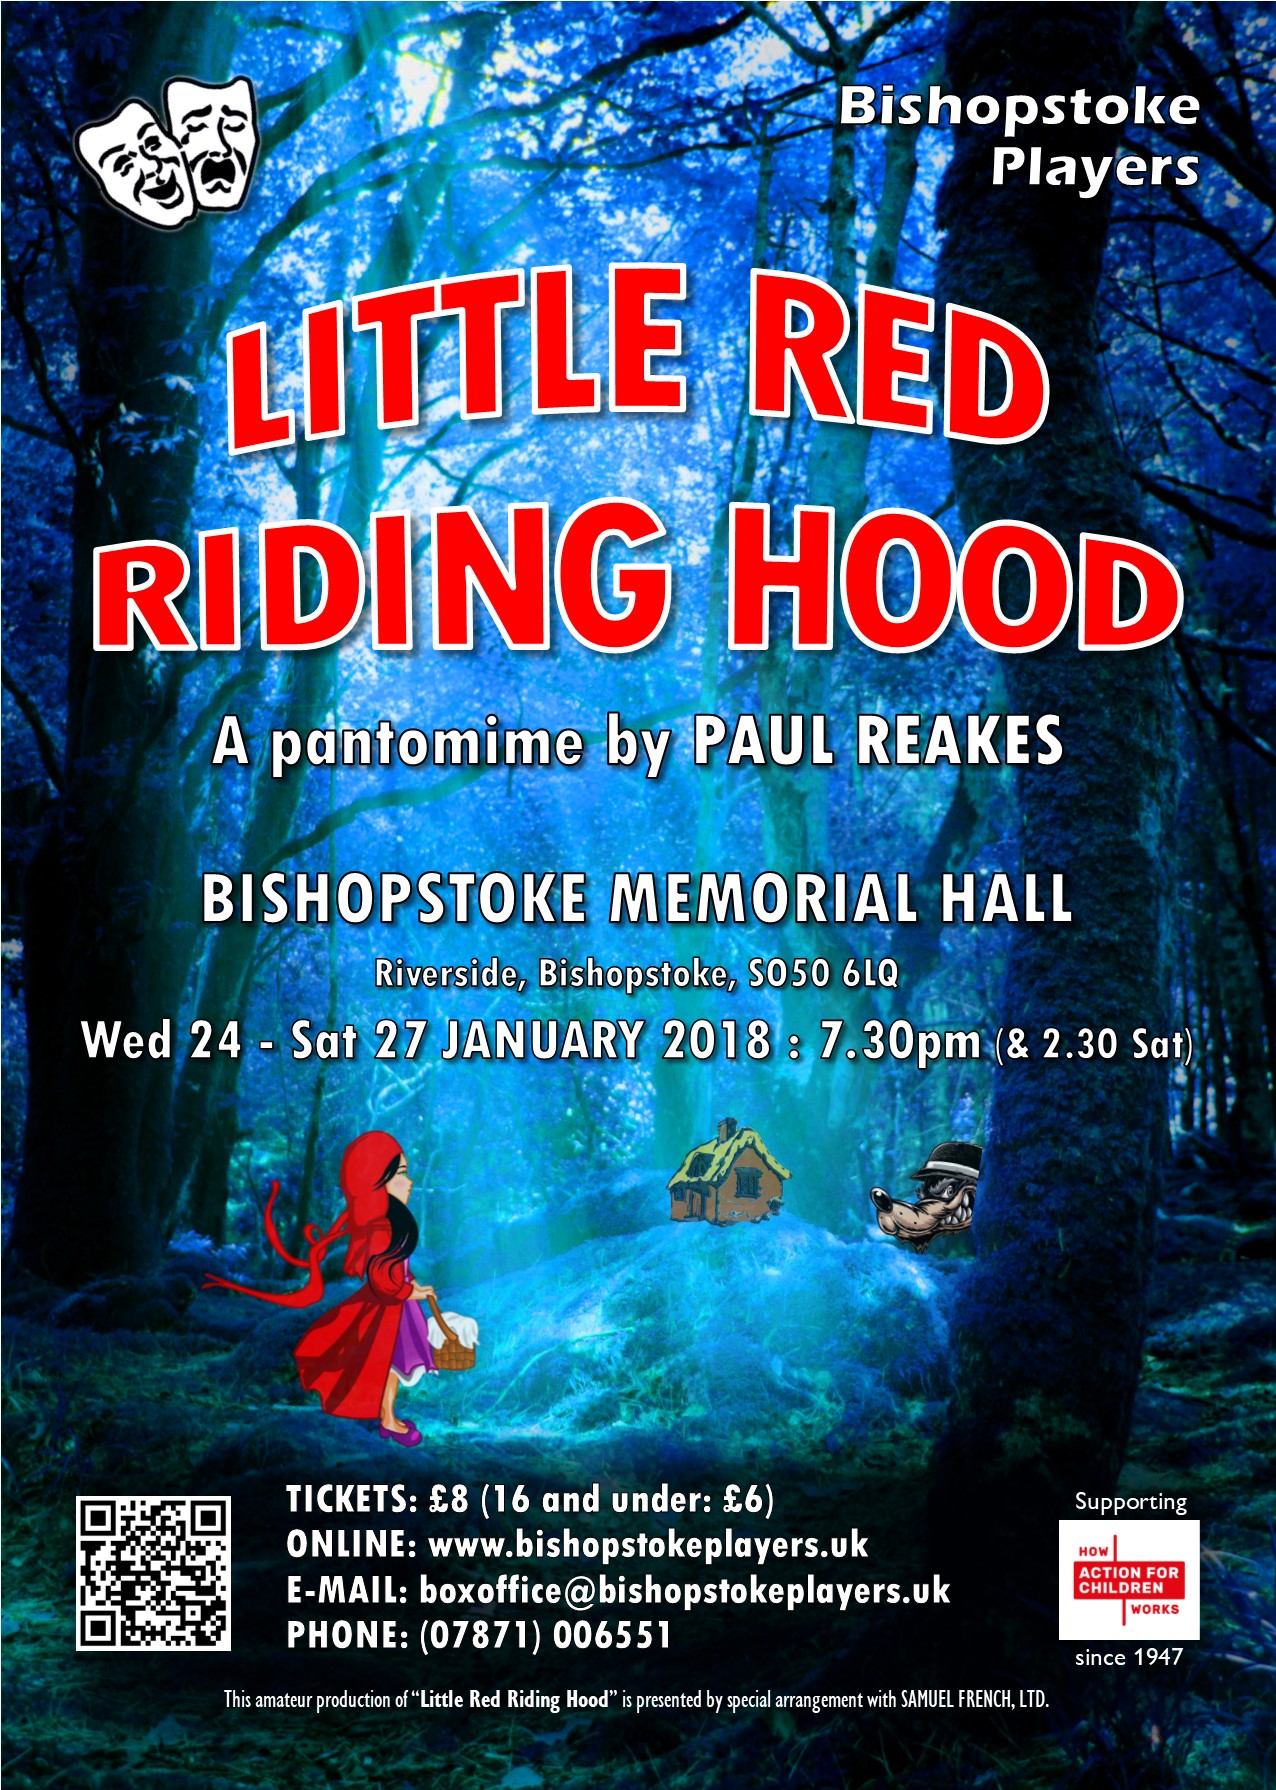 Bishopstoke Players Present Little Red Riding Hood Pantomime